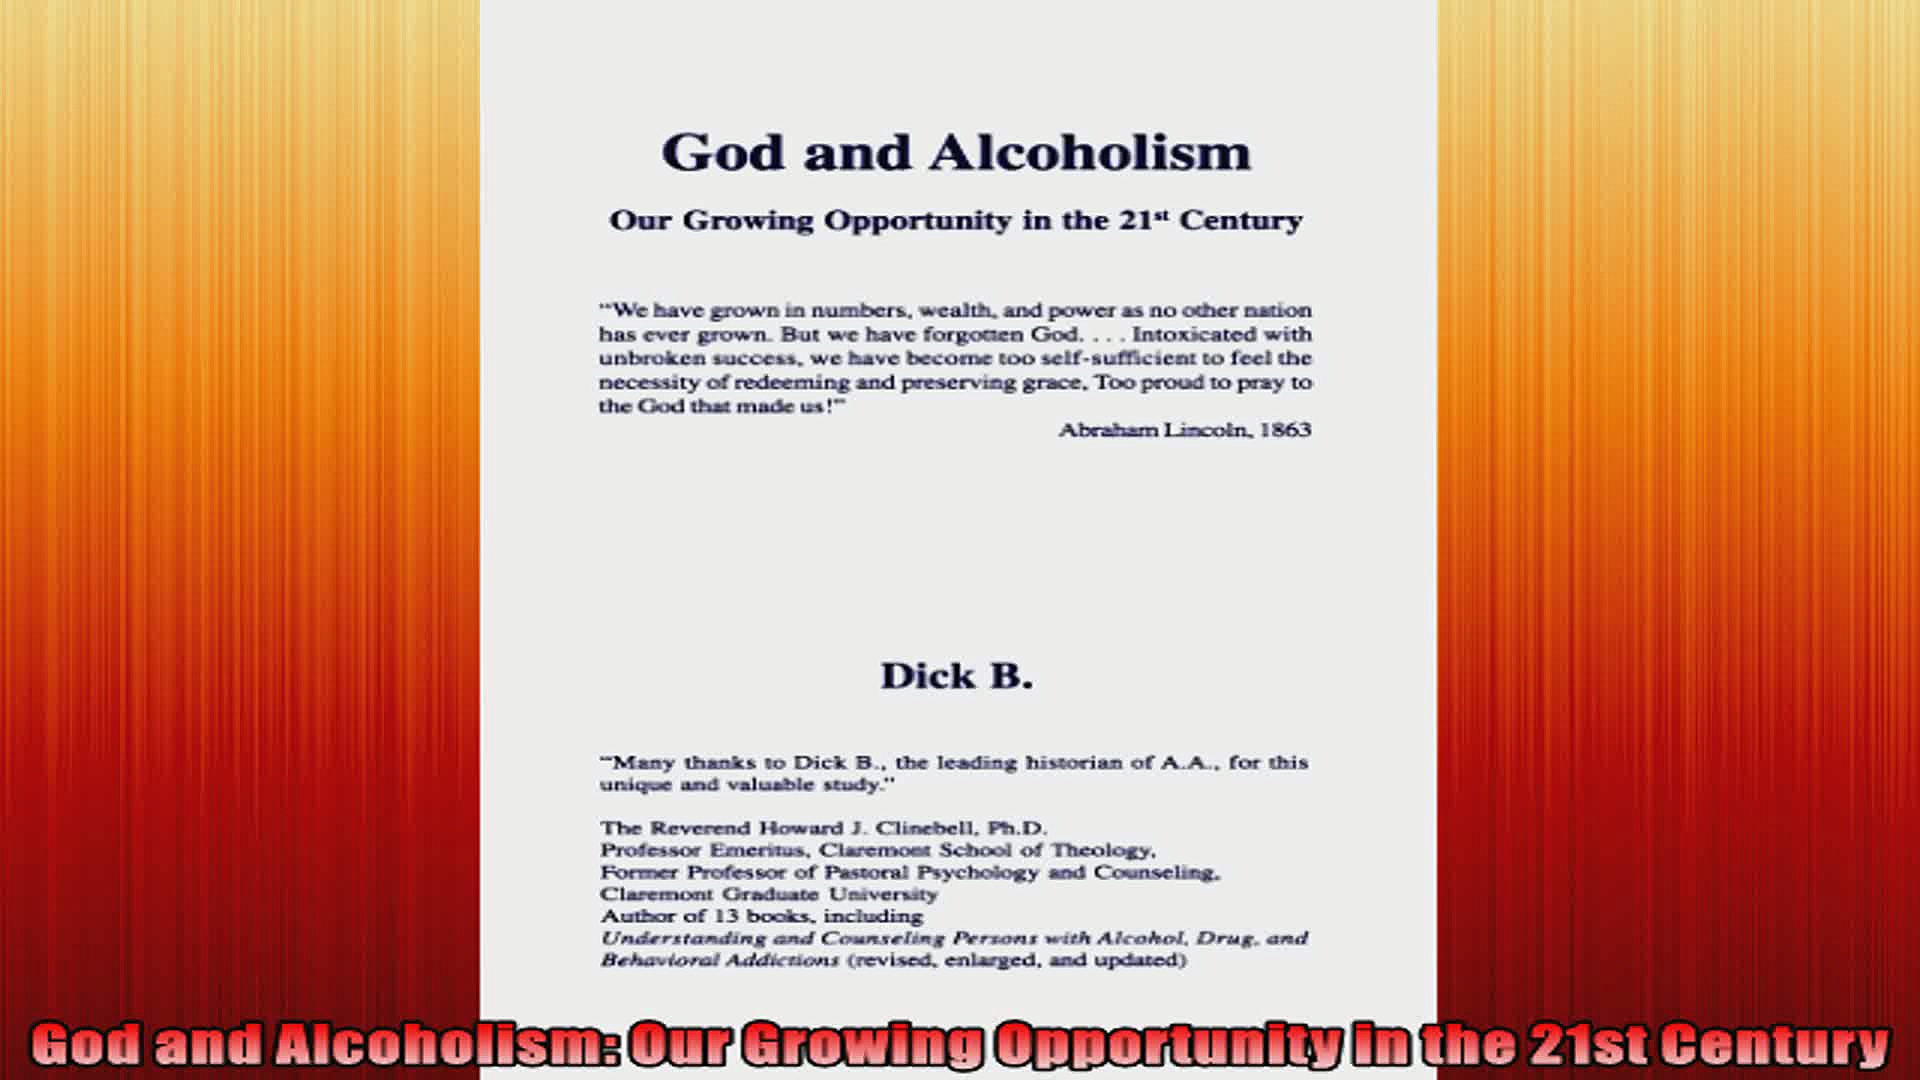 God and Alcoholism Our Growing Opportunity in the 21st Century